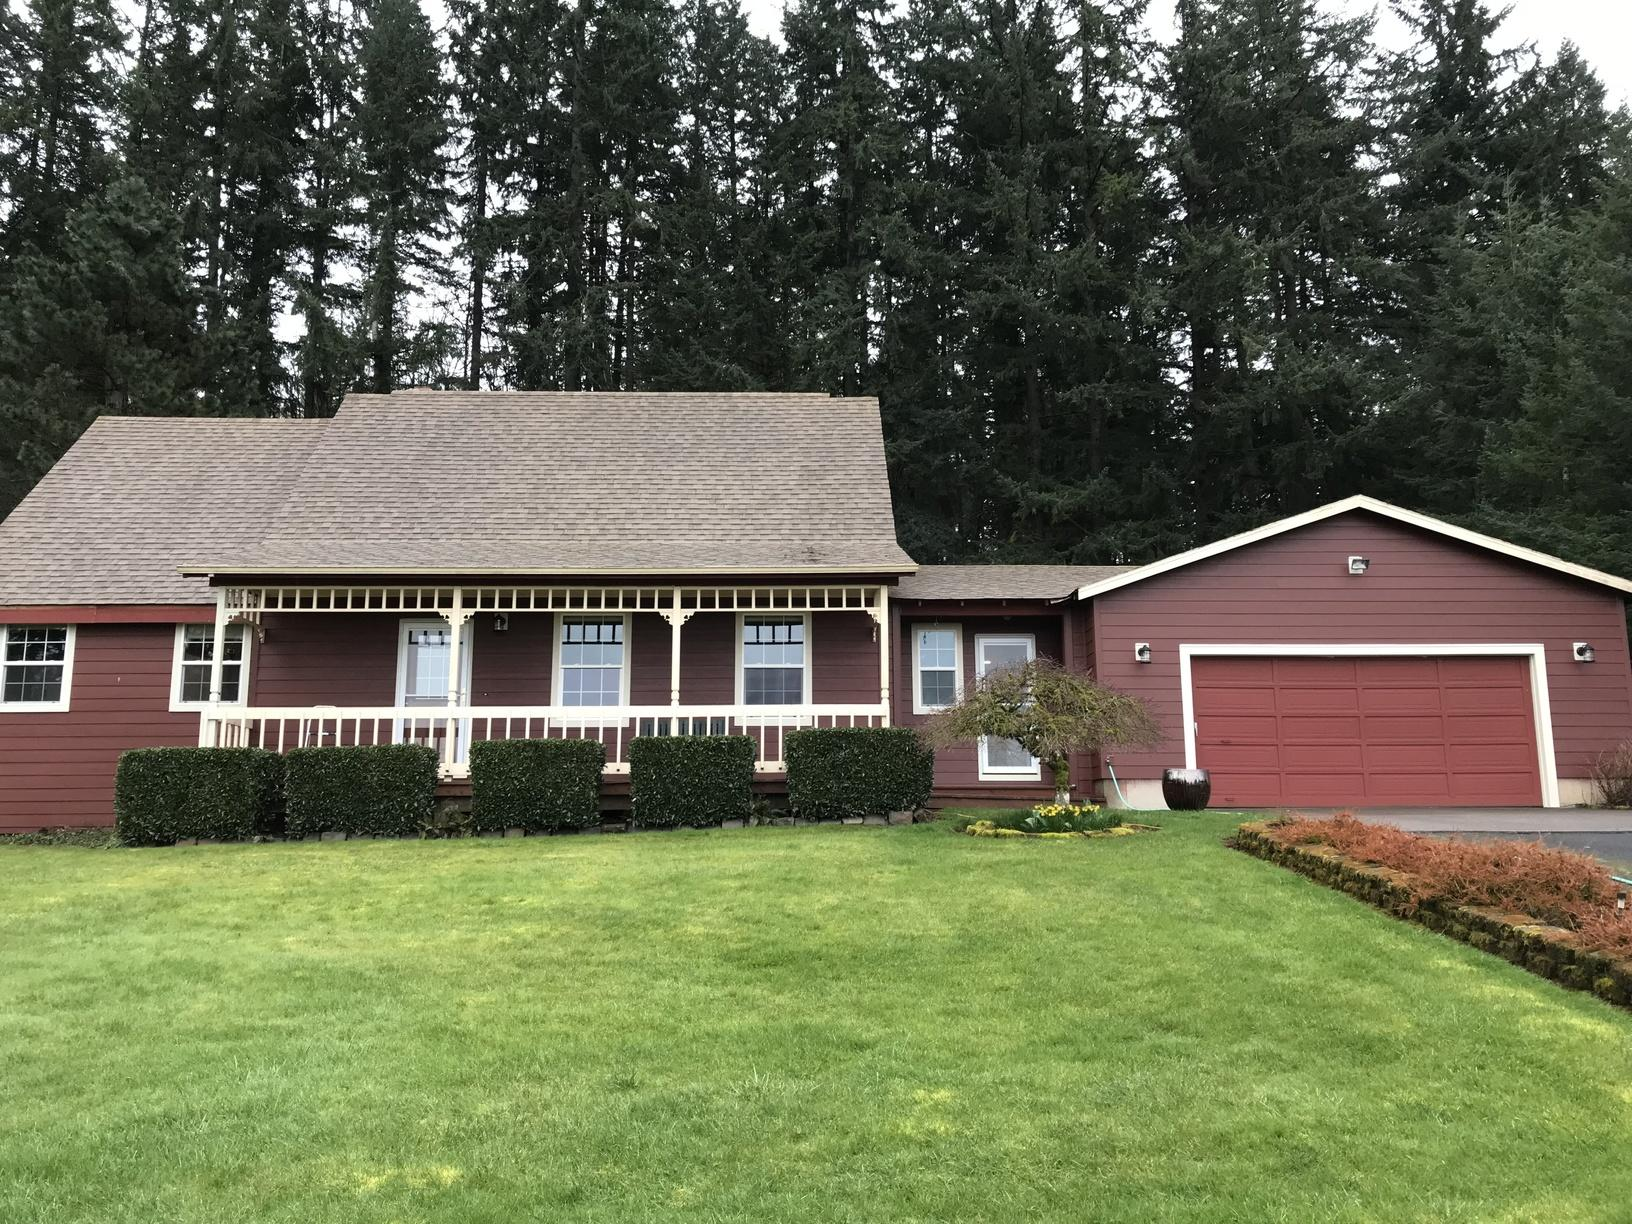 Full ColorPlus Siding Replacement in Sandy, OR - After Photo